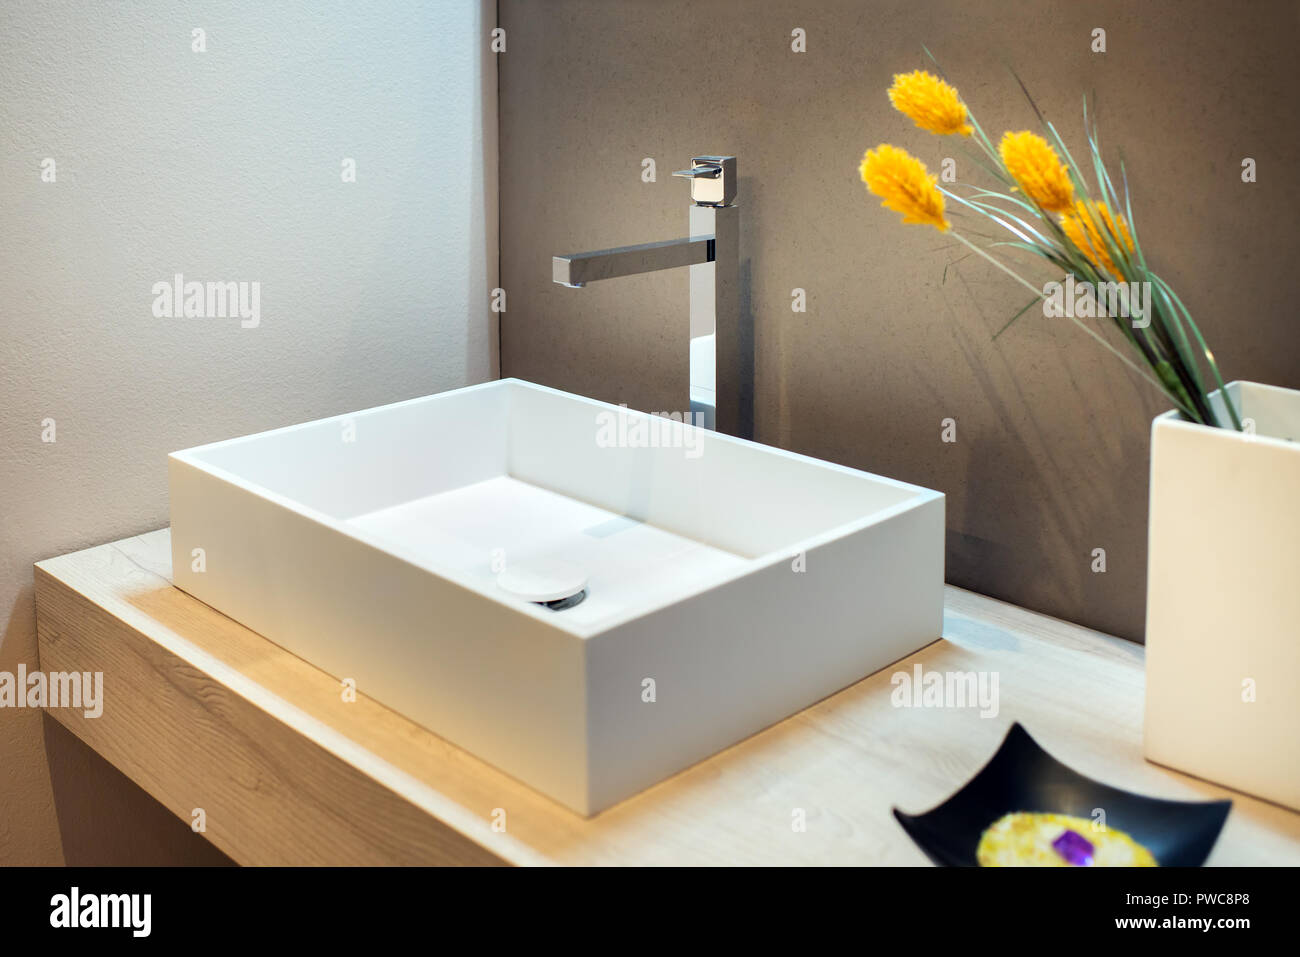 Stylish rectangular hand basin in modern bathroom with chrome faucet and flower arrangement - Stock Image